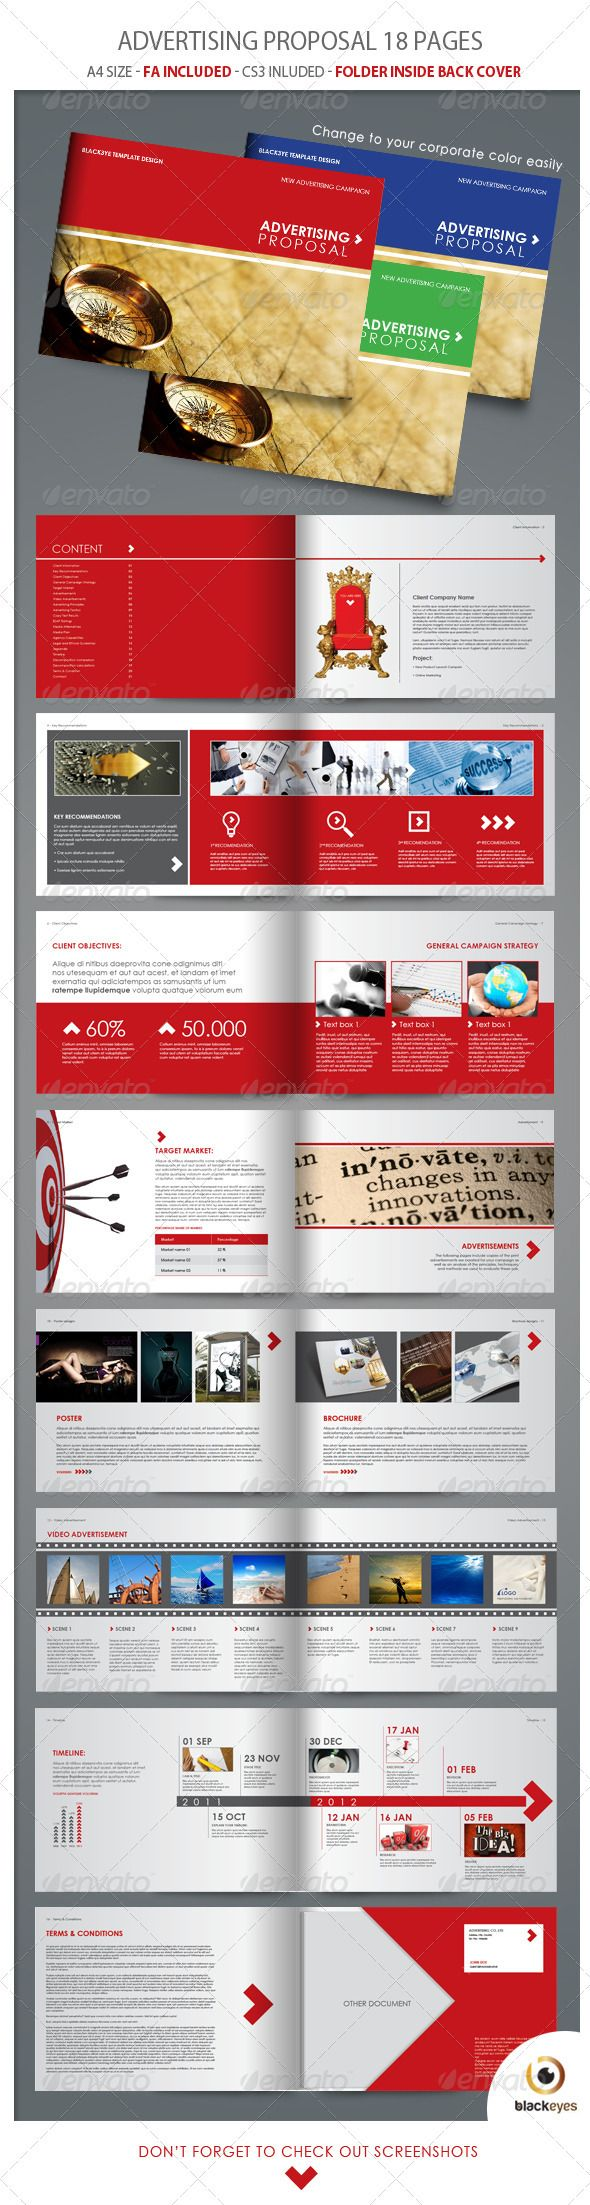 Advertising Proposal - Proposals & Invoices Stationery